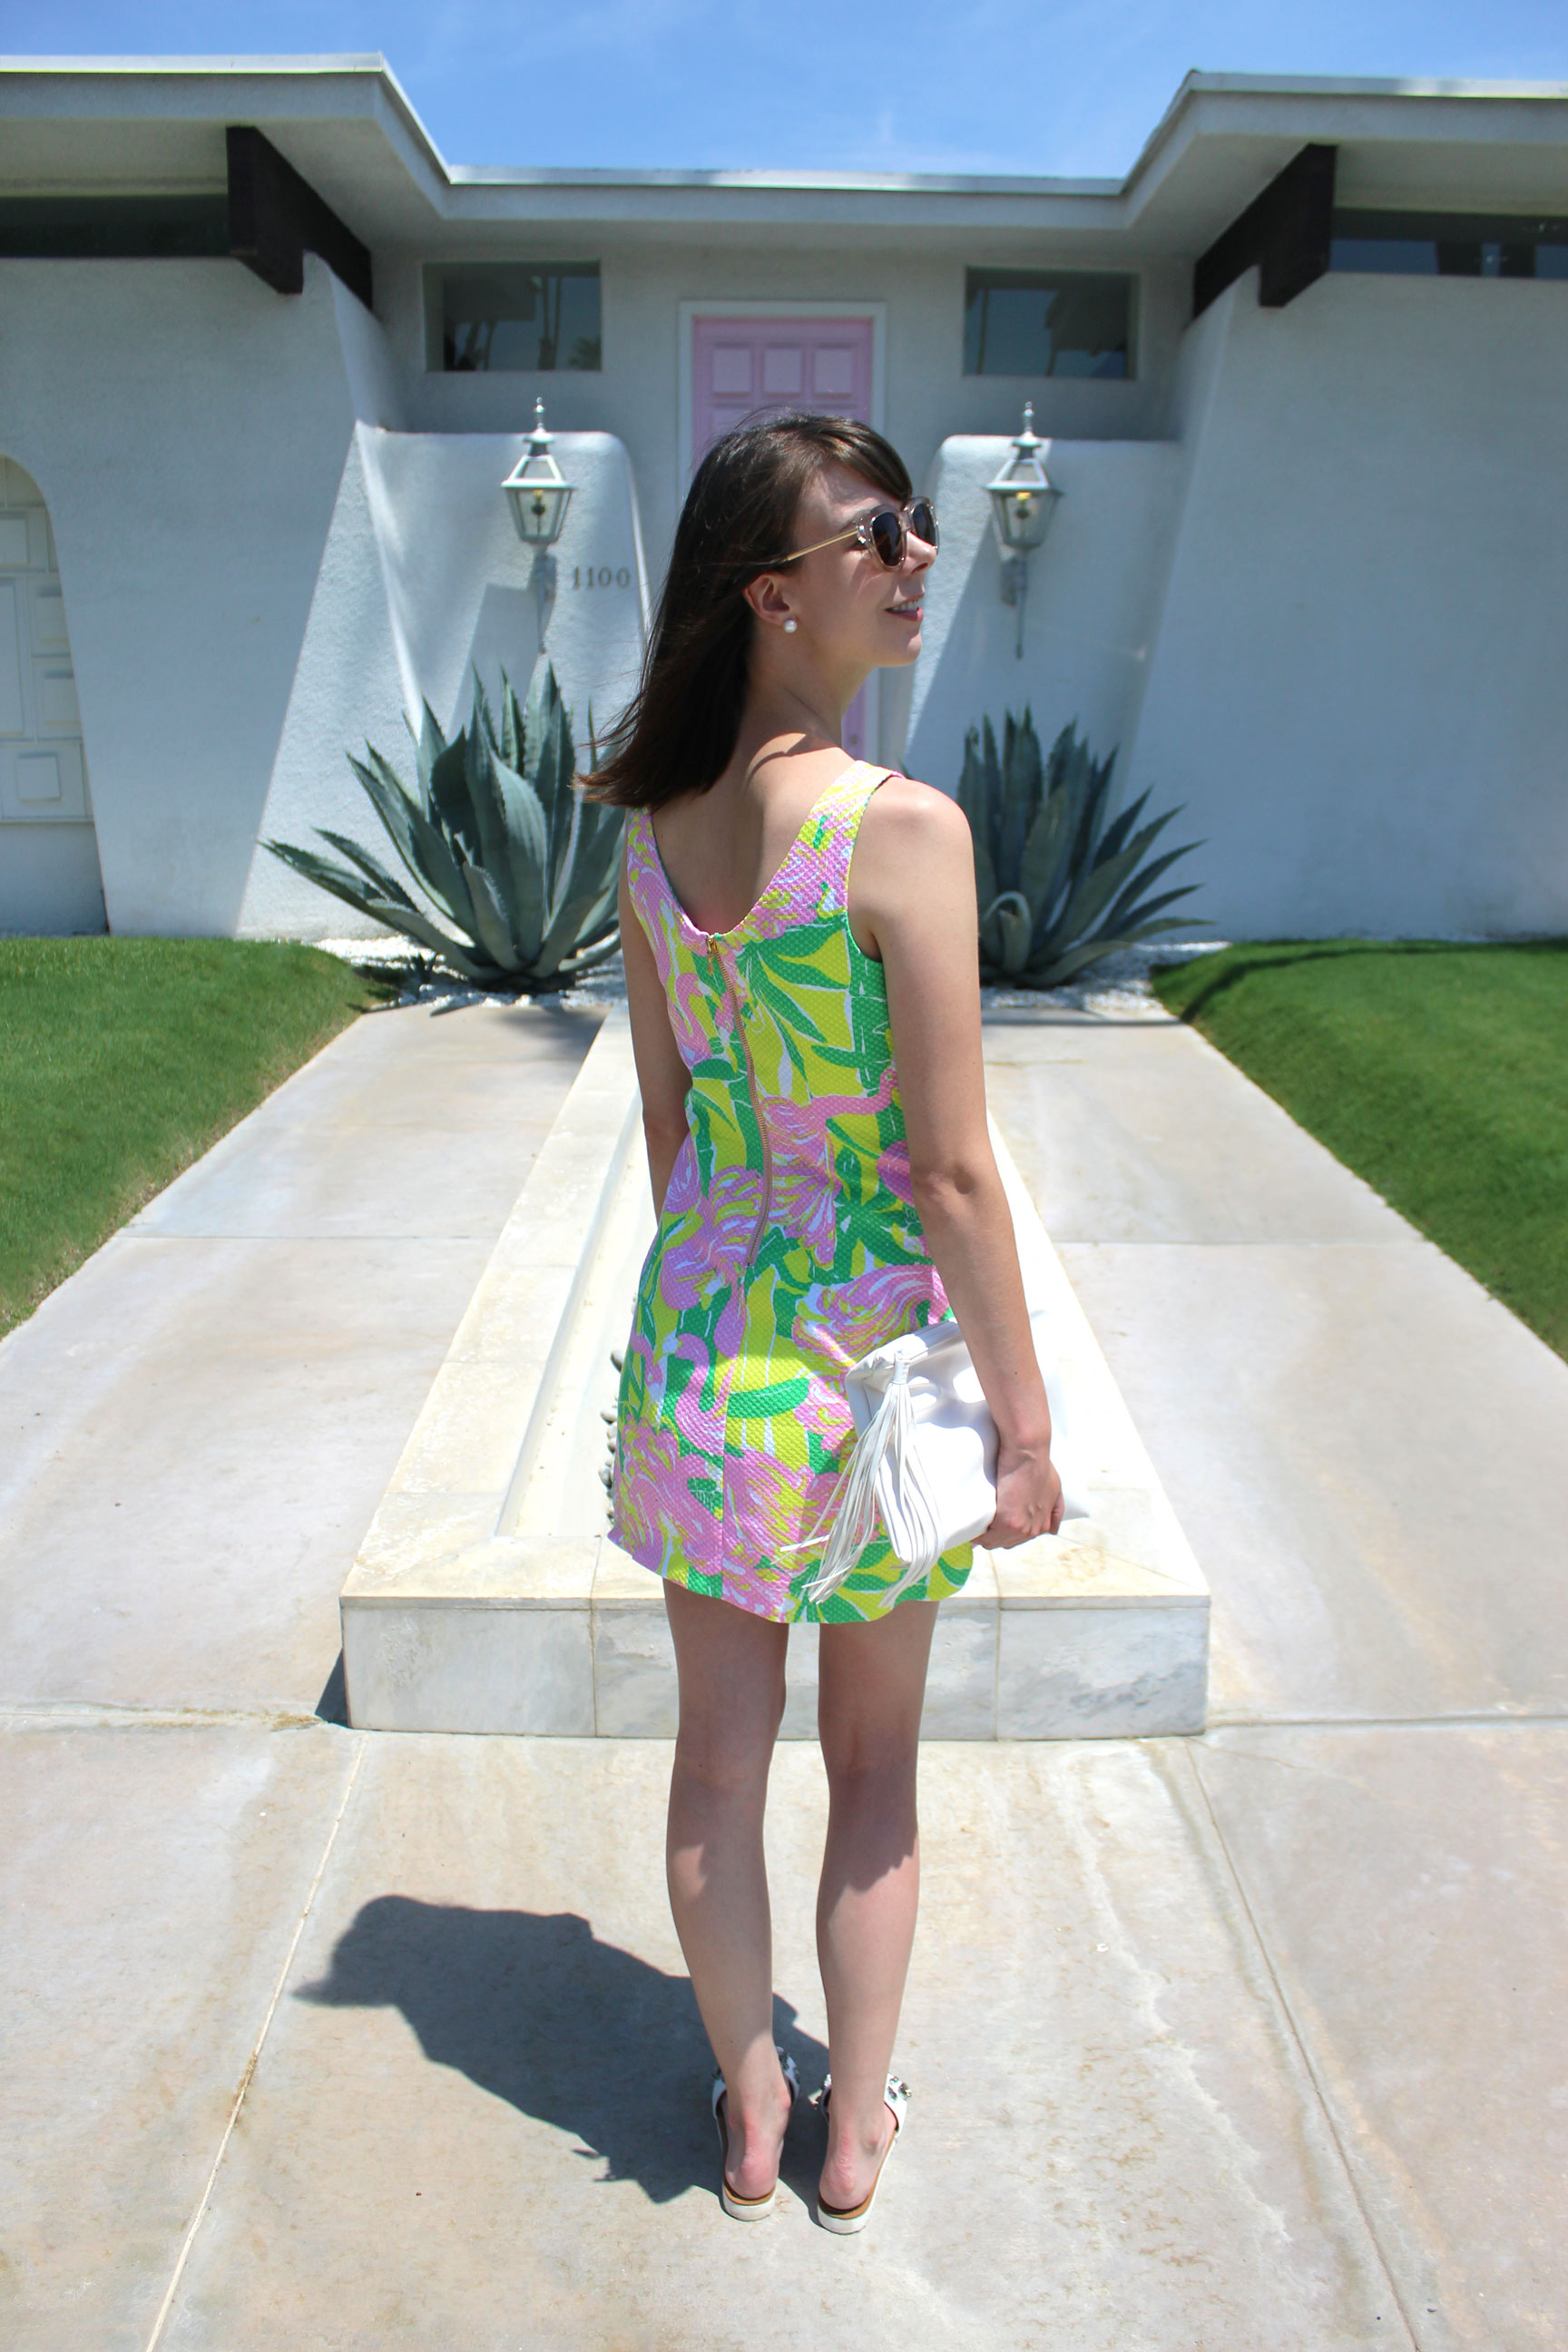 Flamingo print Lilly Pulitzer for Target shift dress in front of the pink door house in Palm Springs   Sundays and Somedays